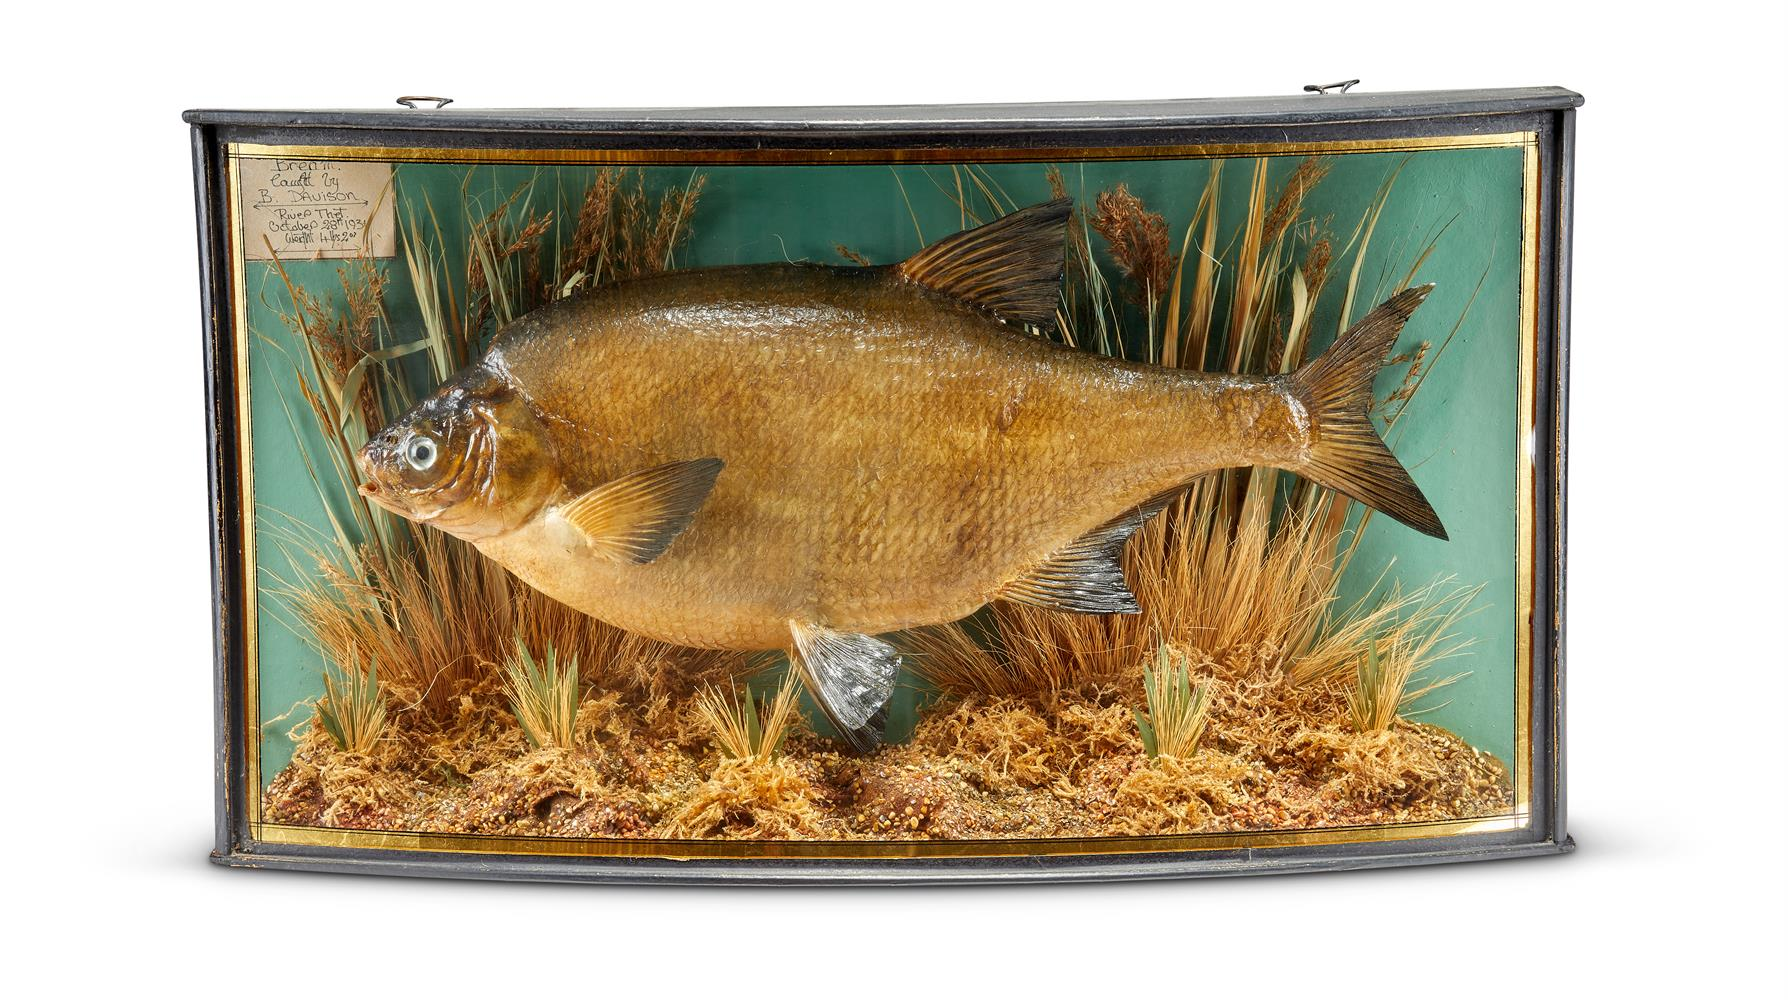 Y A PRESERVED MODEL OF A BREAM - Image 2 of 2